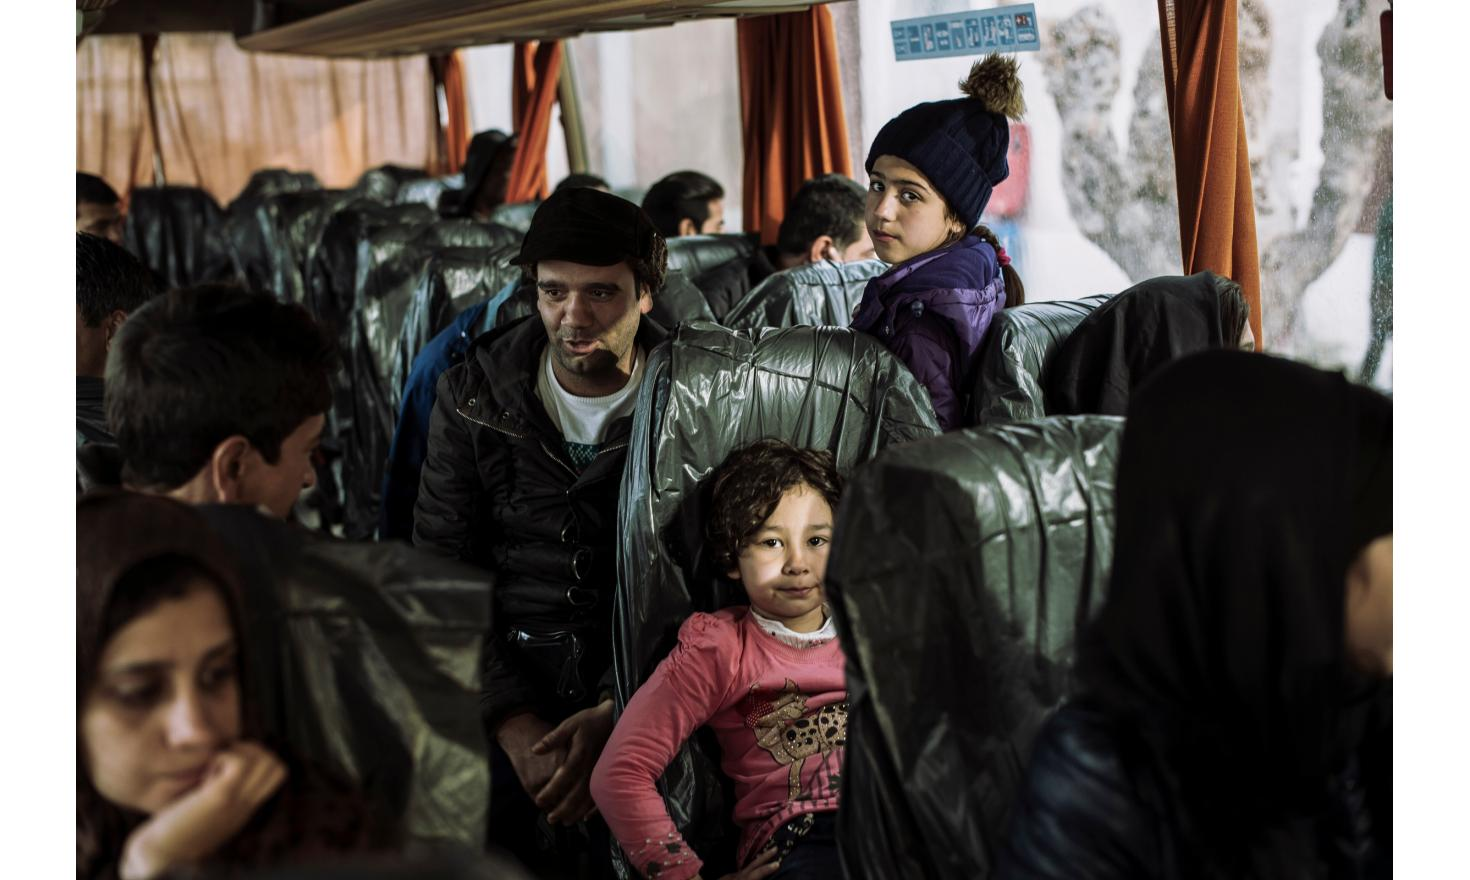 MSF bus with refugees going to take a ferry to Athens